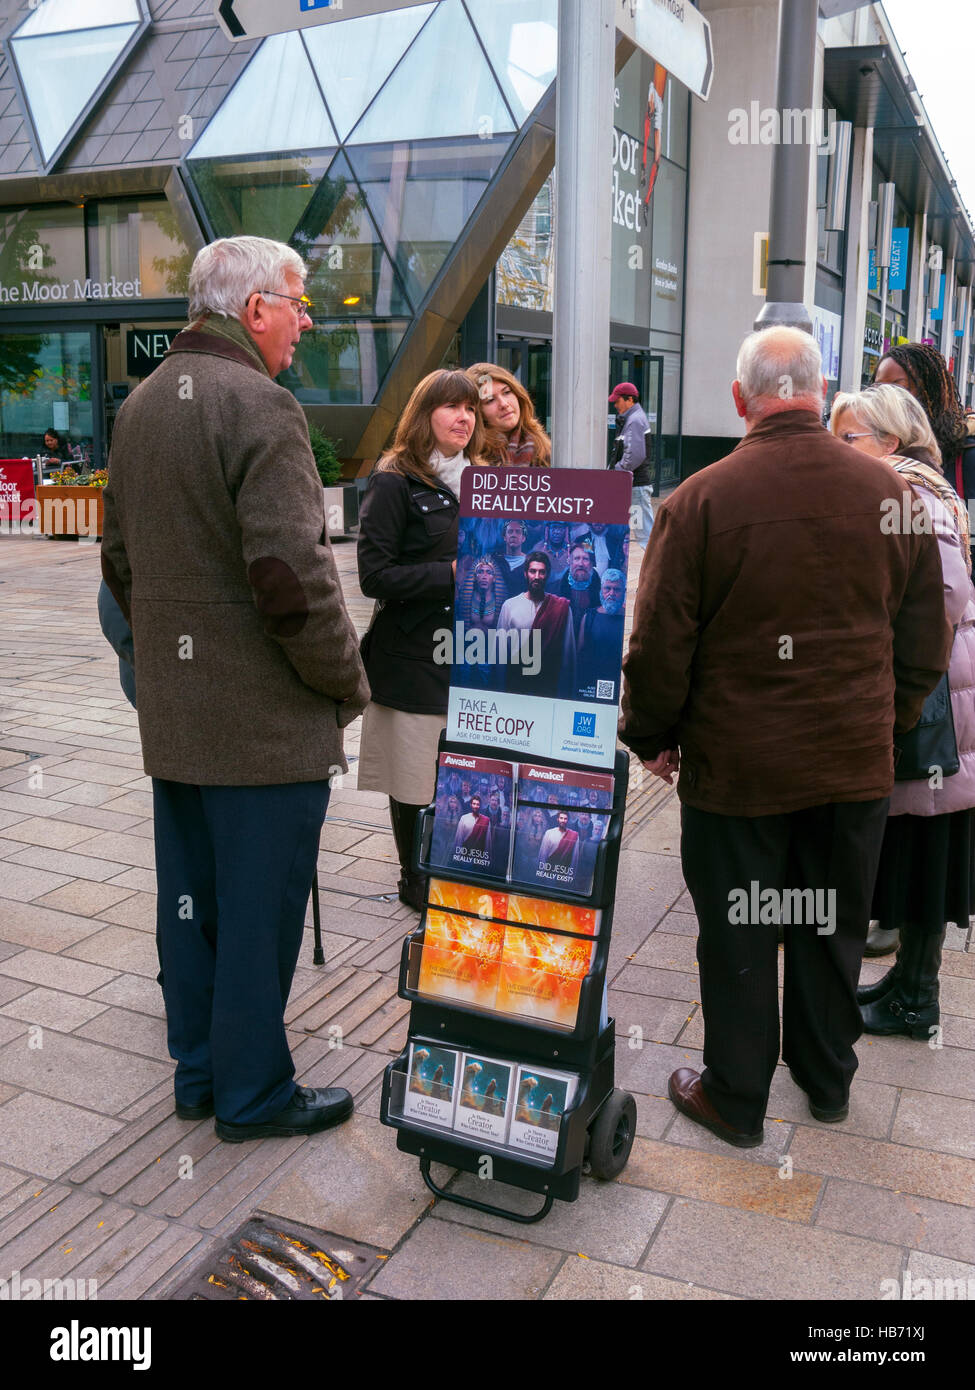 Jehovah's Witnesses talking to passers-by, Sheffield - Stock Image